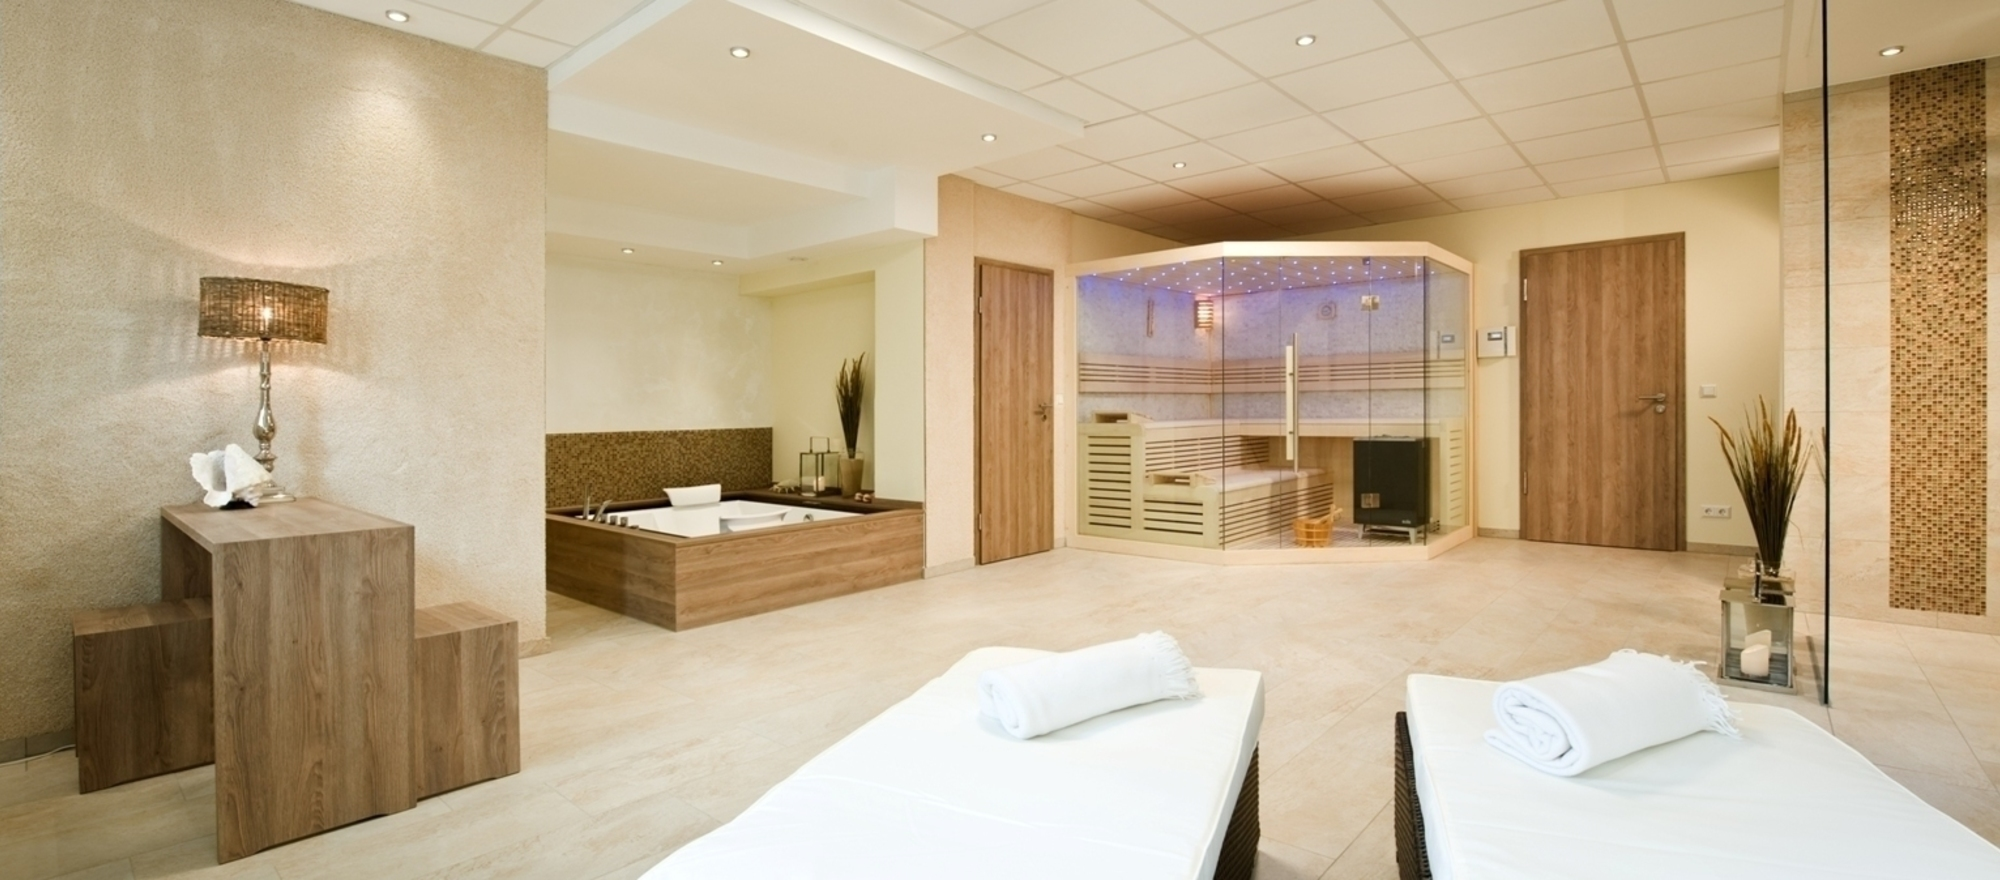 Private spa with own sauna, jacuzzi, relaxation area and spa shower in the 4-star hotel Ringhotel Am Stadtpark in Luenen